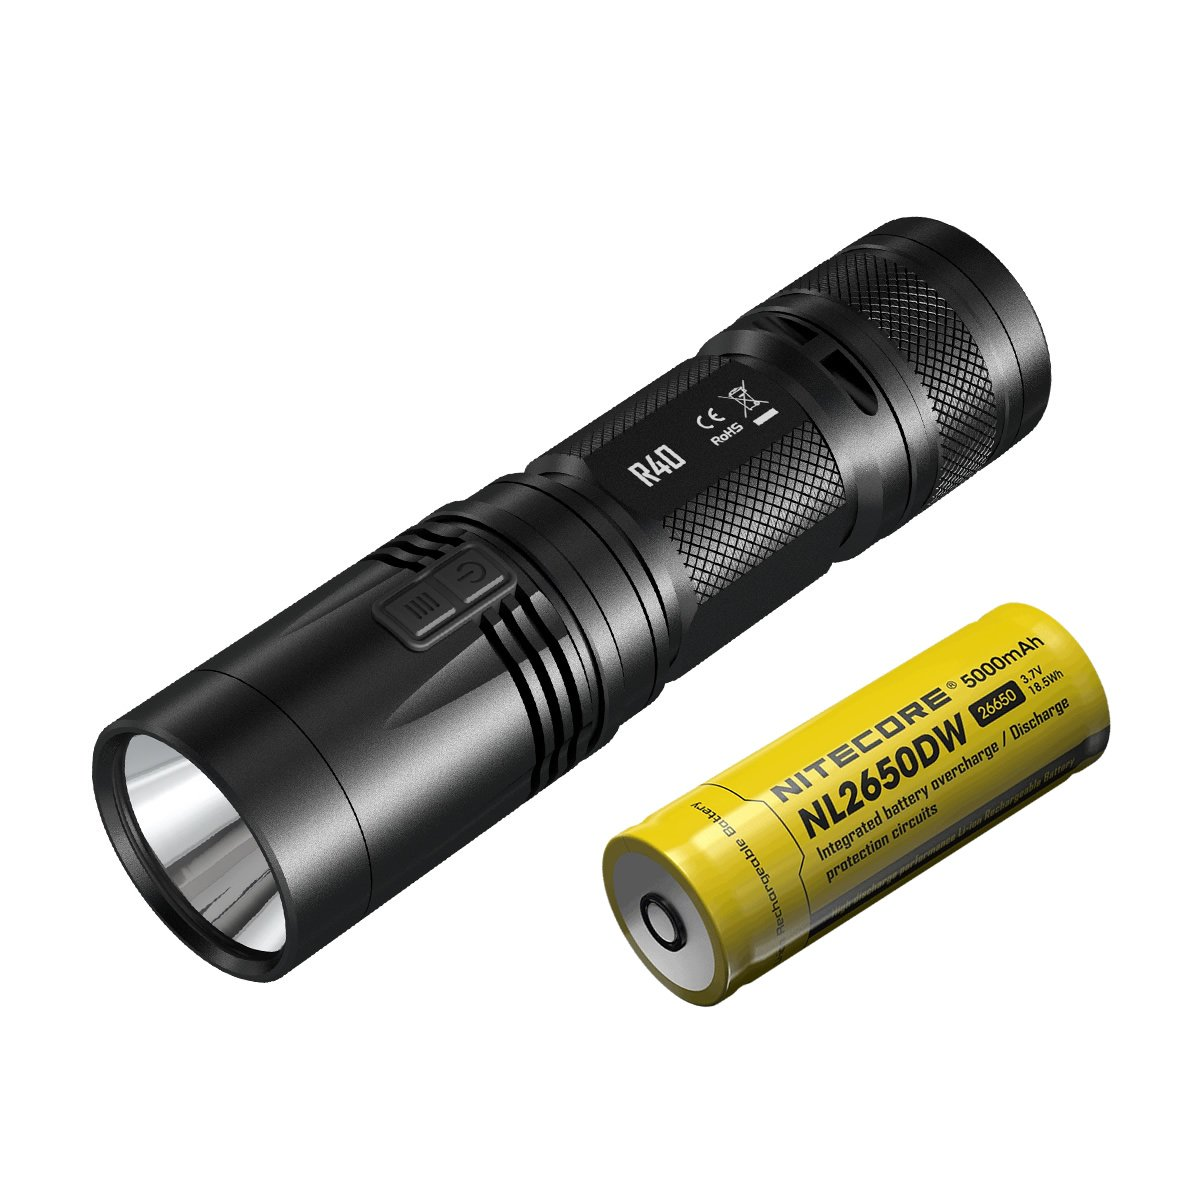 Manbuy NITECORE 1000 lumens XP-L HI LED Rechargeable White light With Battery Gear Outdoor Camping Search R40 Flash Light Hand lamp by Nitecore (Image #3)